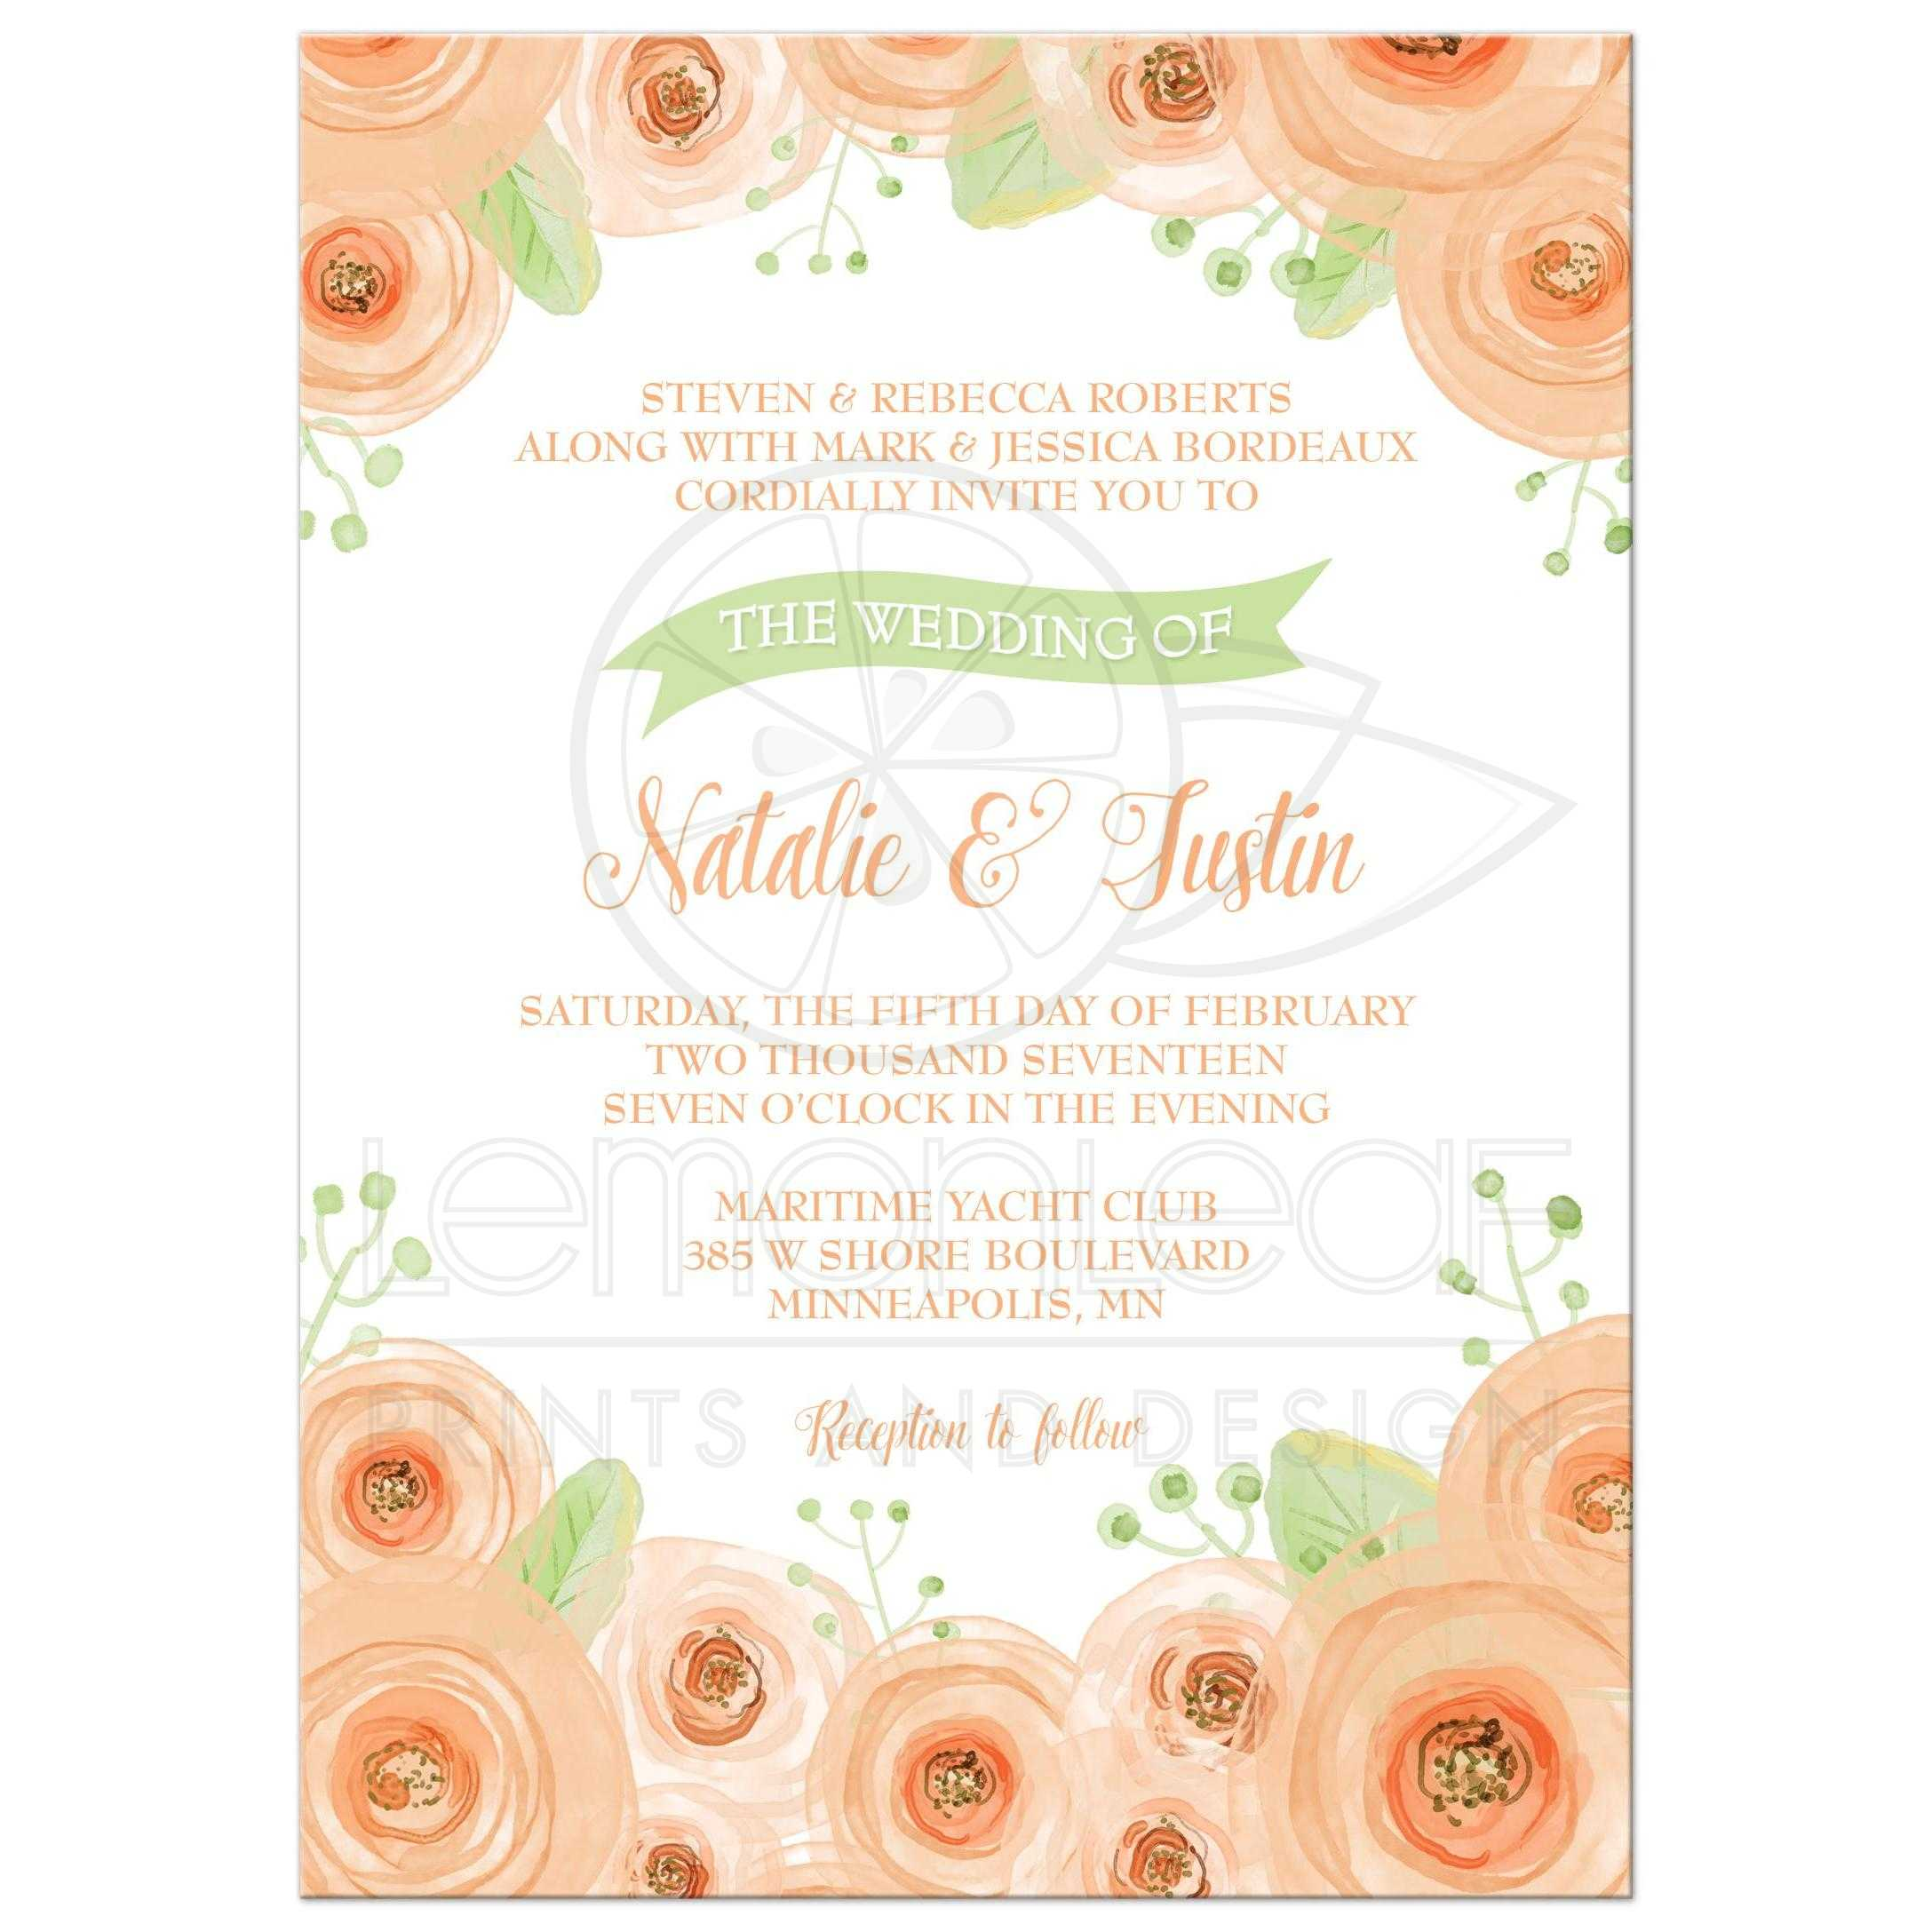 Wedding Invitation Peach And Green Floral Watercolor